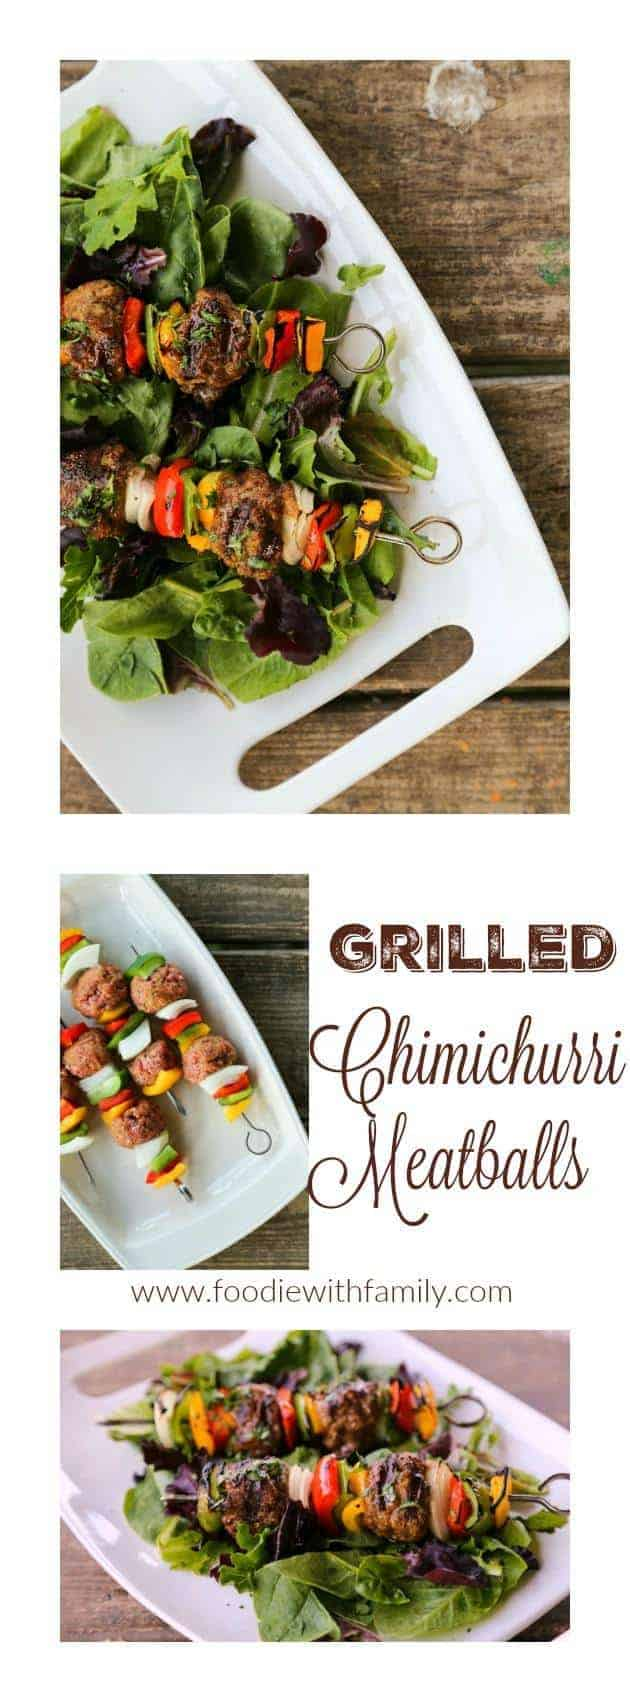 Chimichurri Grilled Meatballs from foodiewithfamily.com